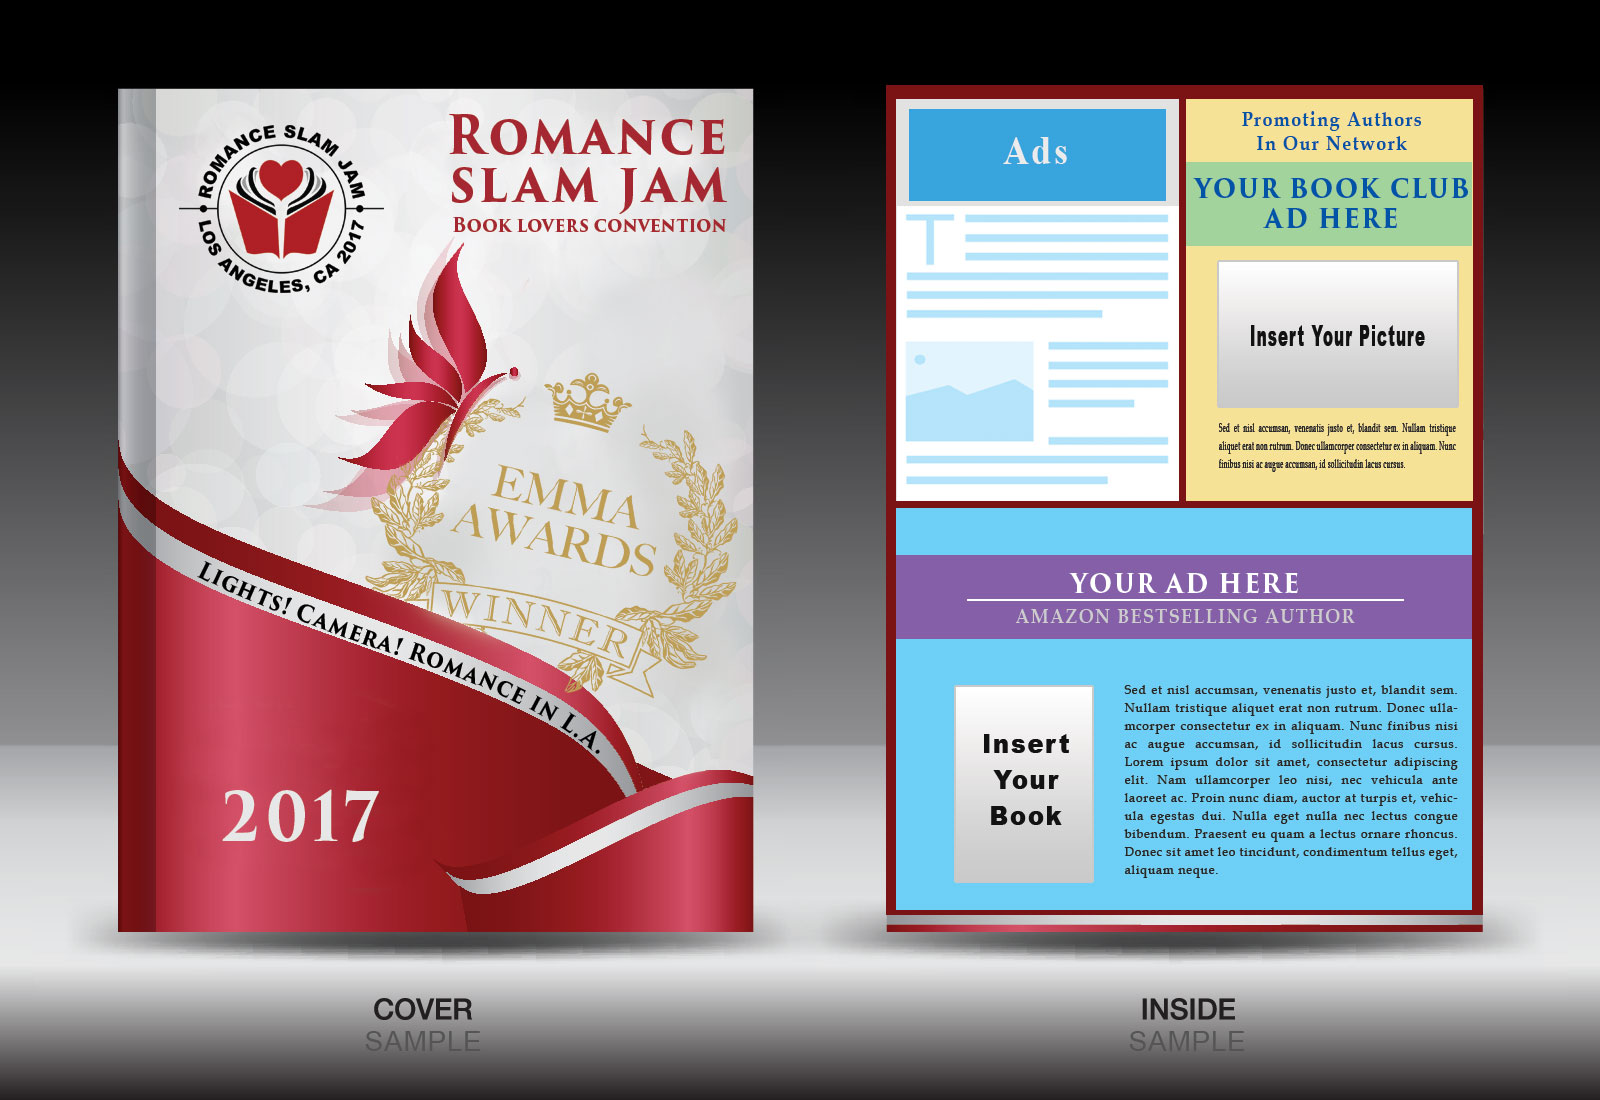 Romance Books - Black Authors Souvenir Booklet